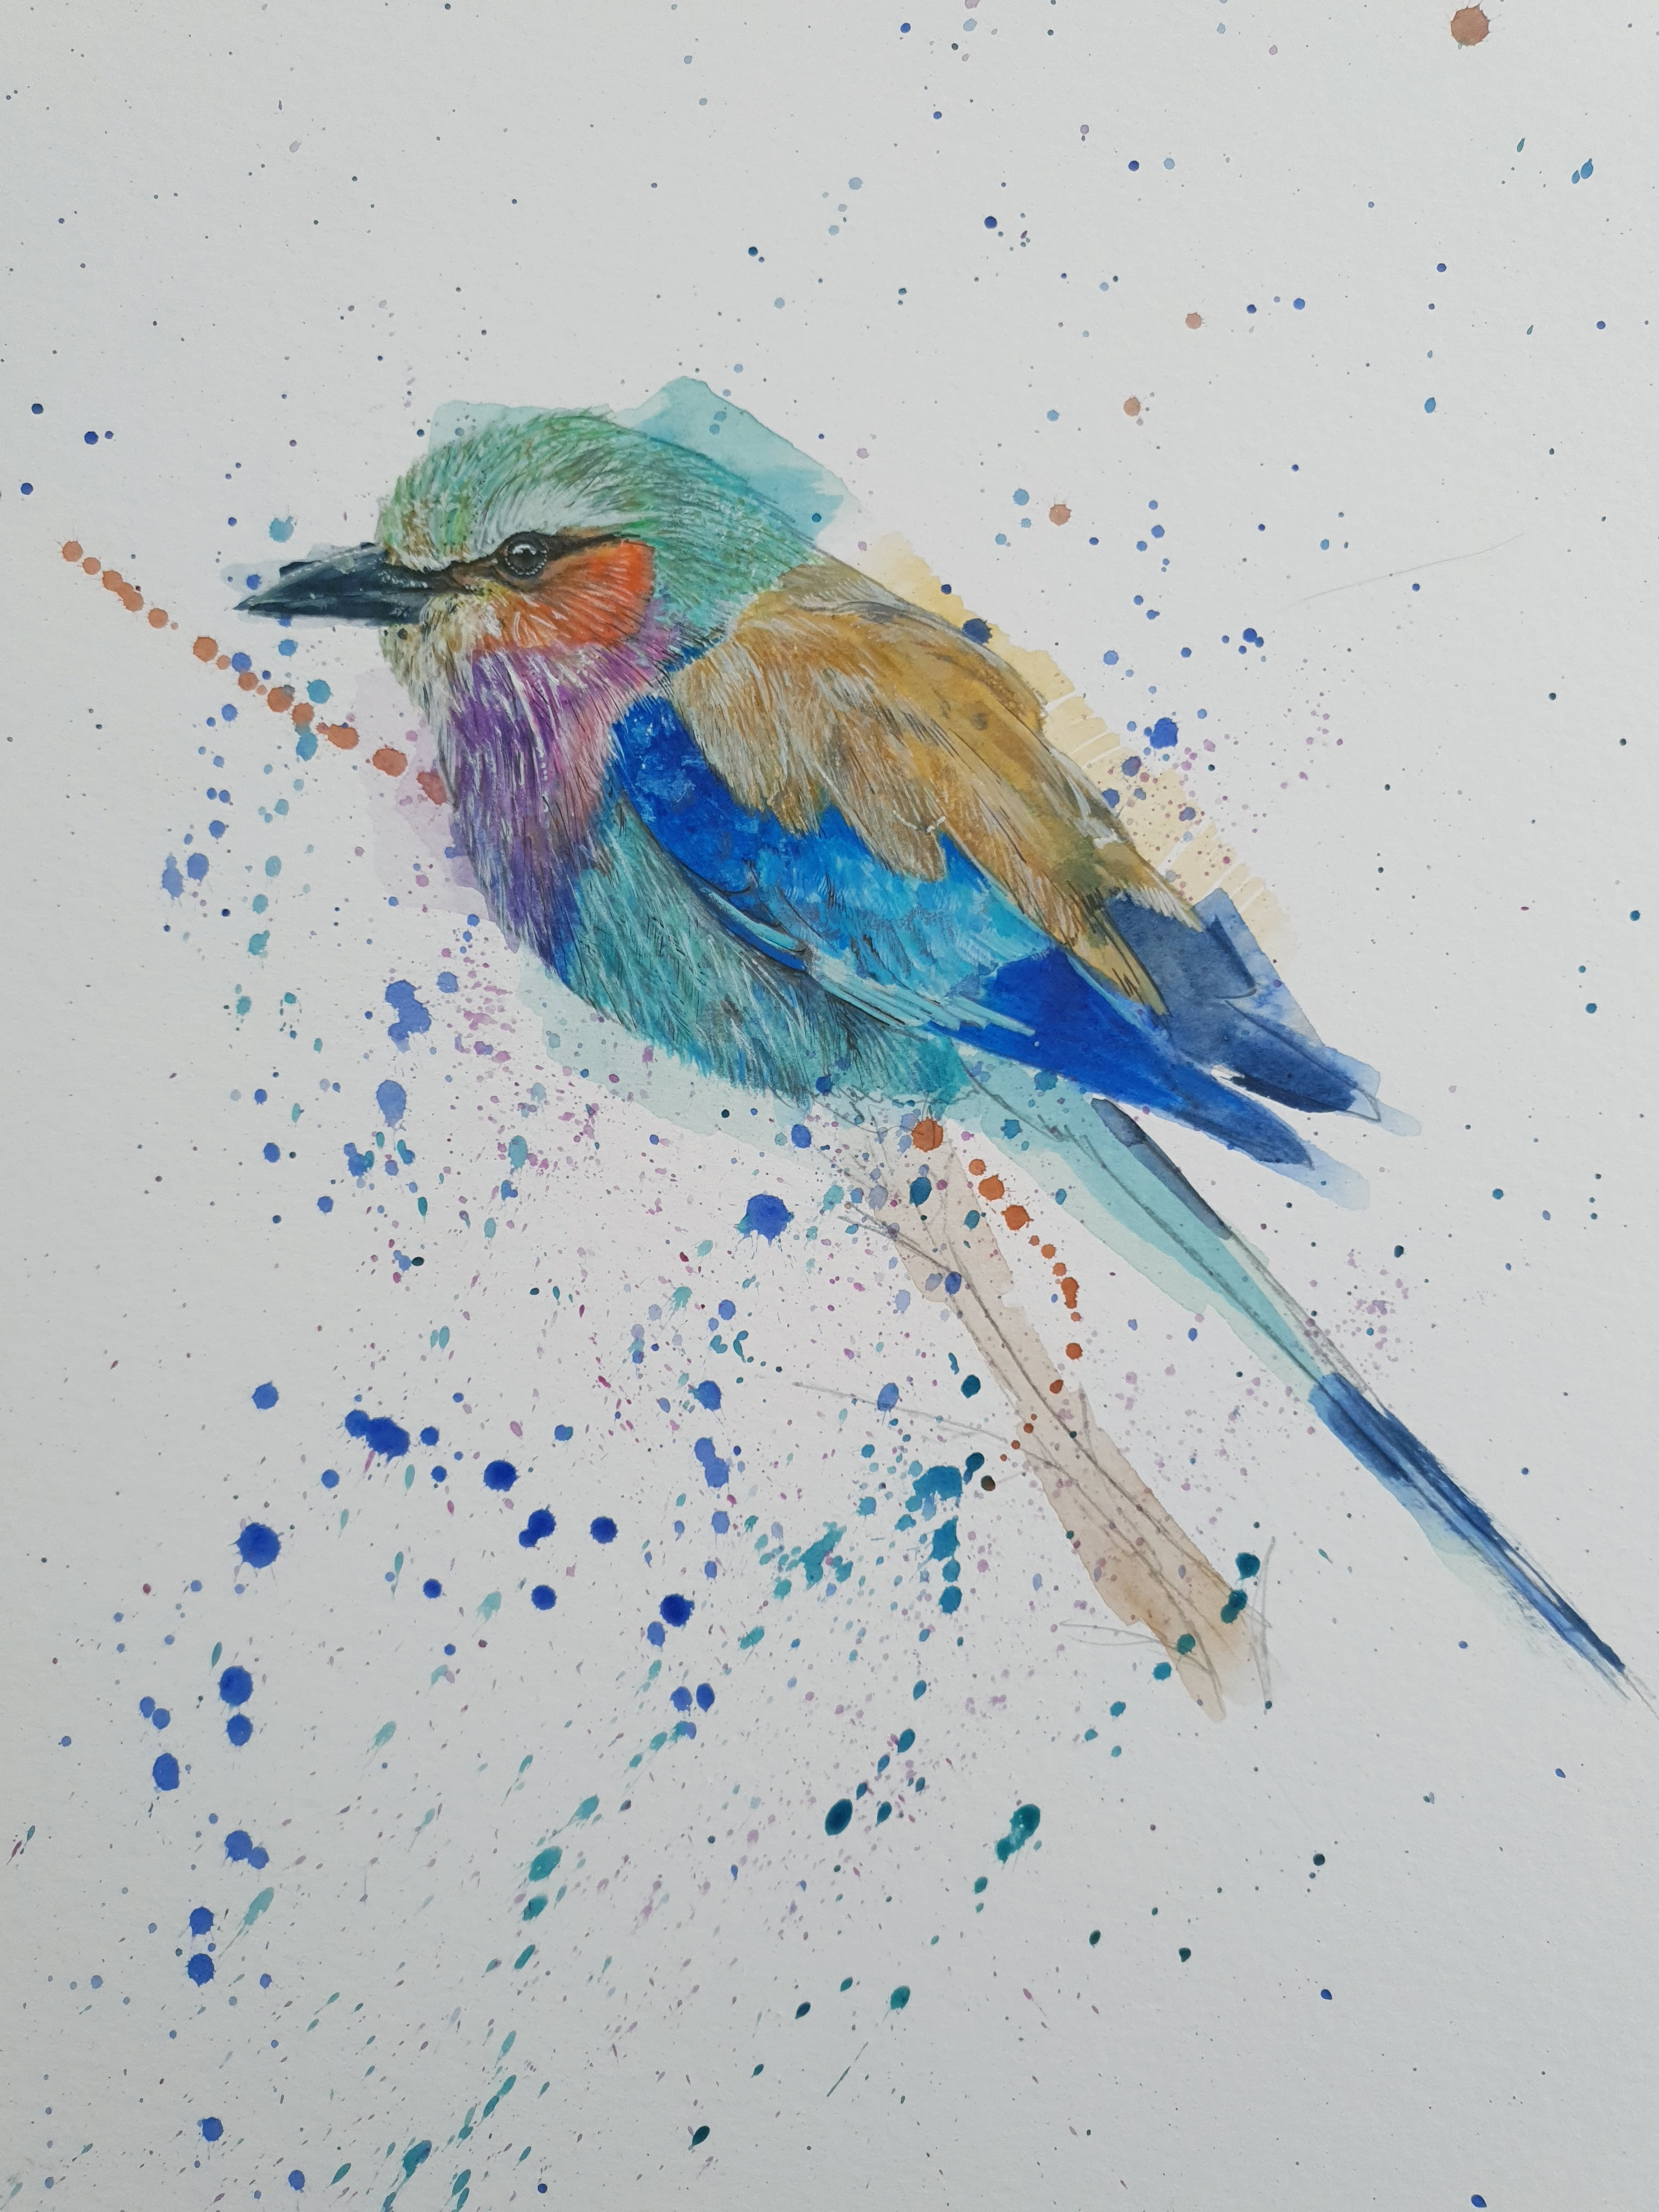 Lilac-breasted roller - stage 3